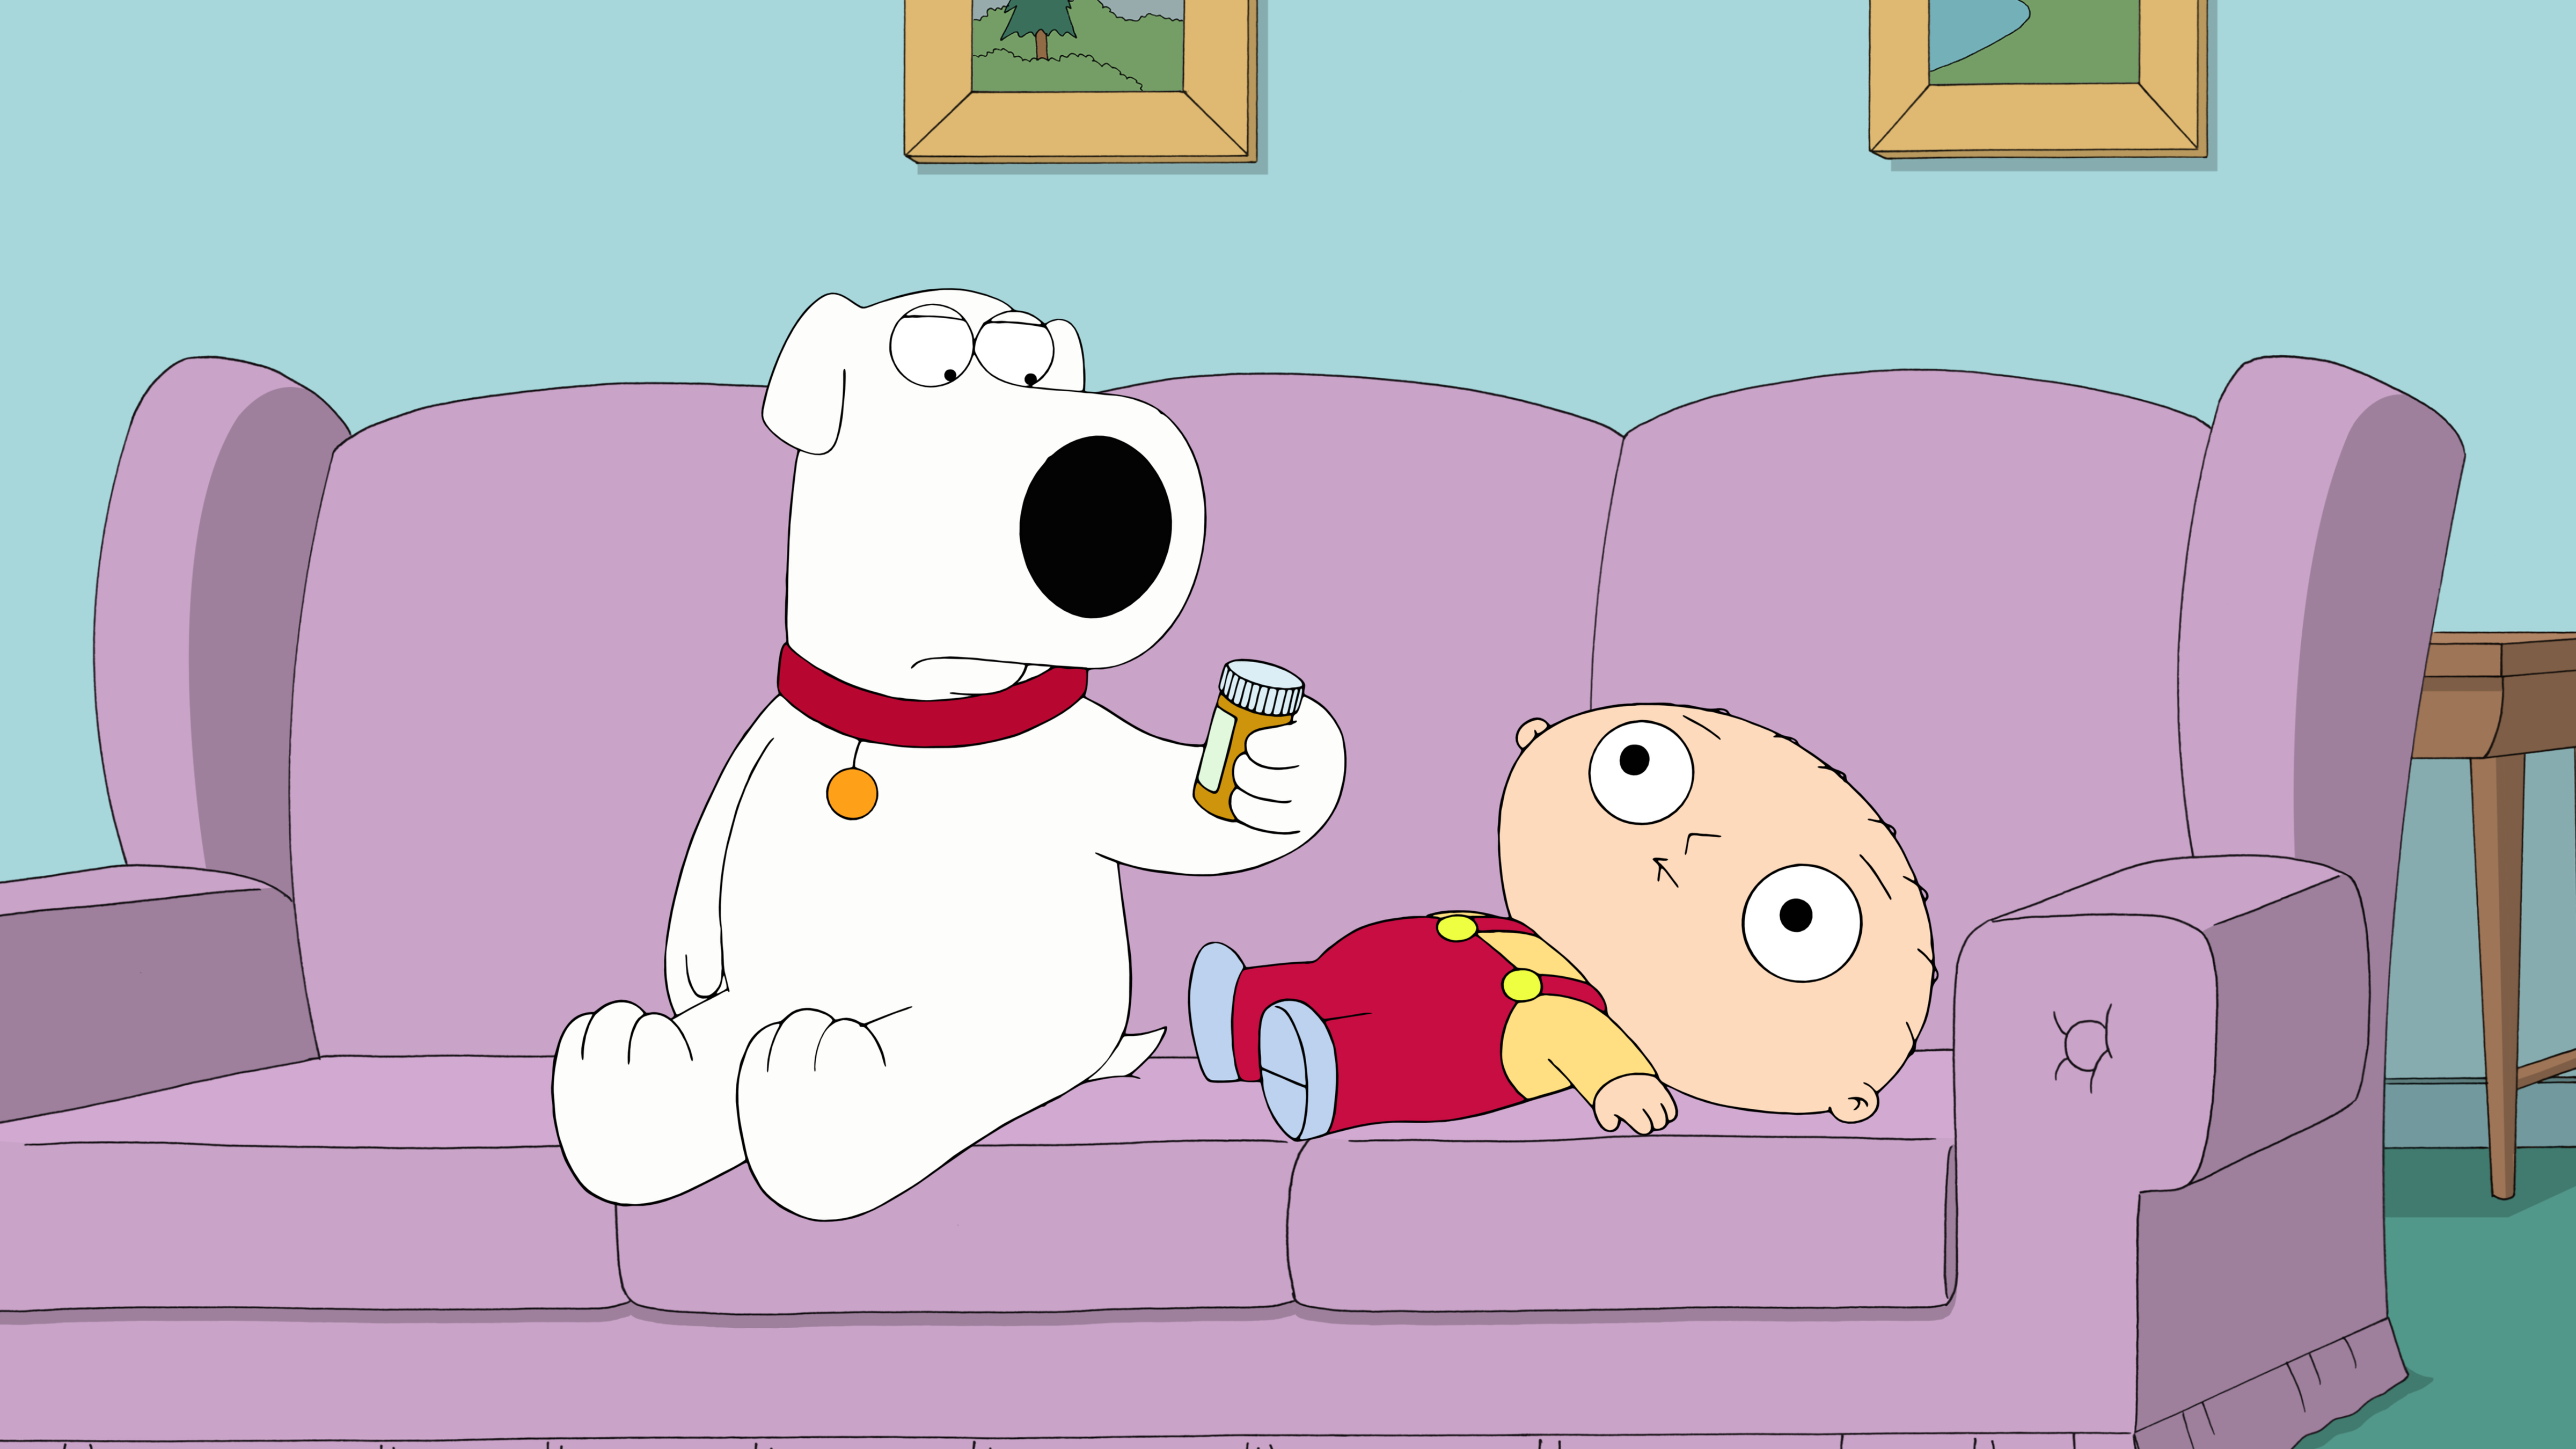 Pilling them softly family guy wiki fandom powered by wikia cacx17 314 04 0049 hires2 thecheapjerseys Image collections